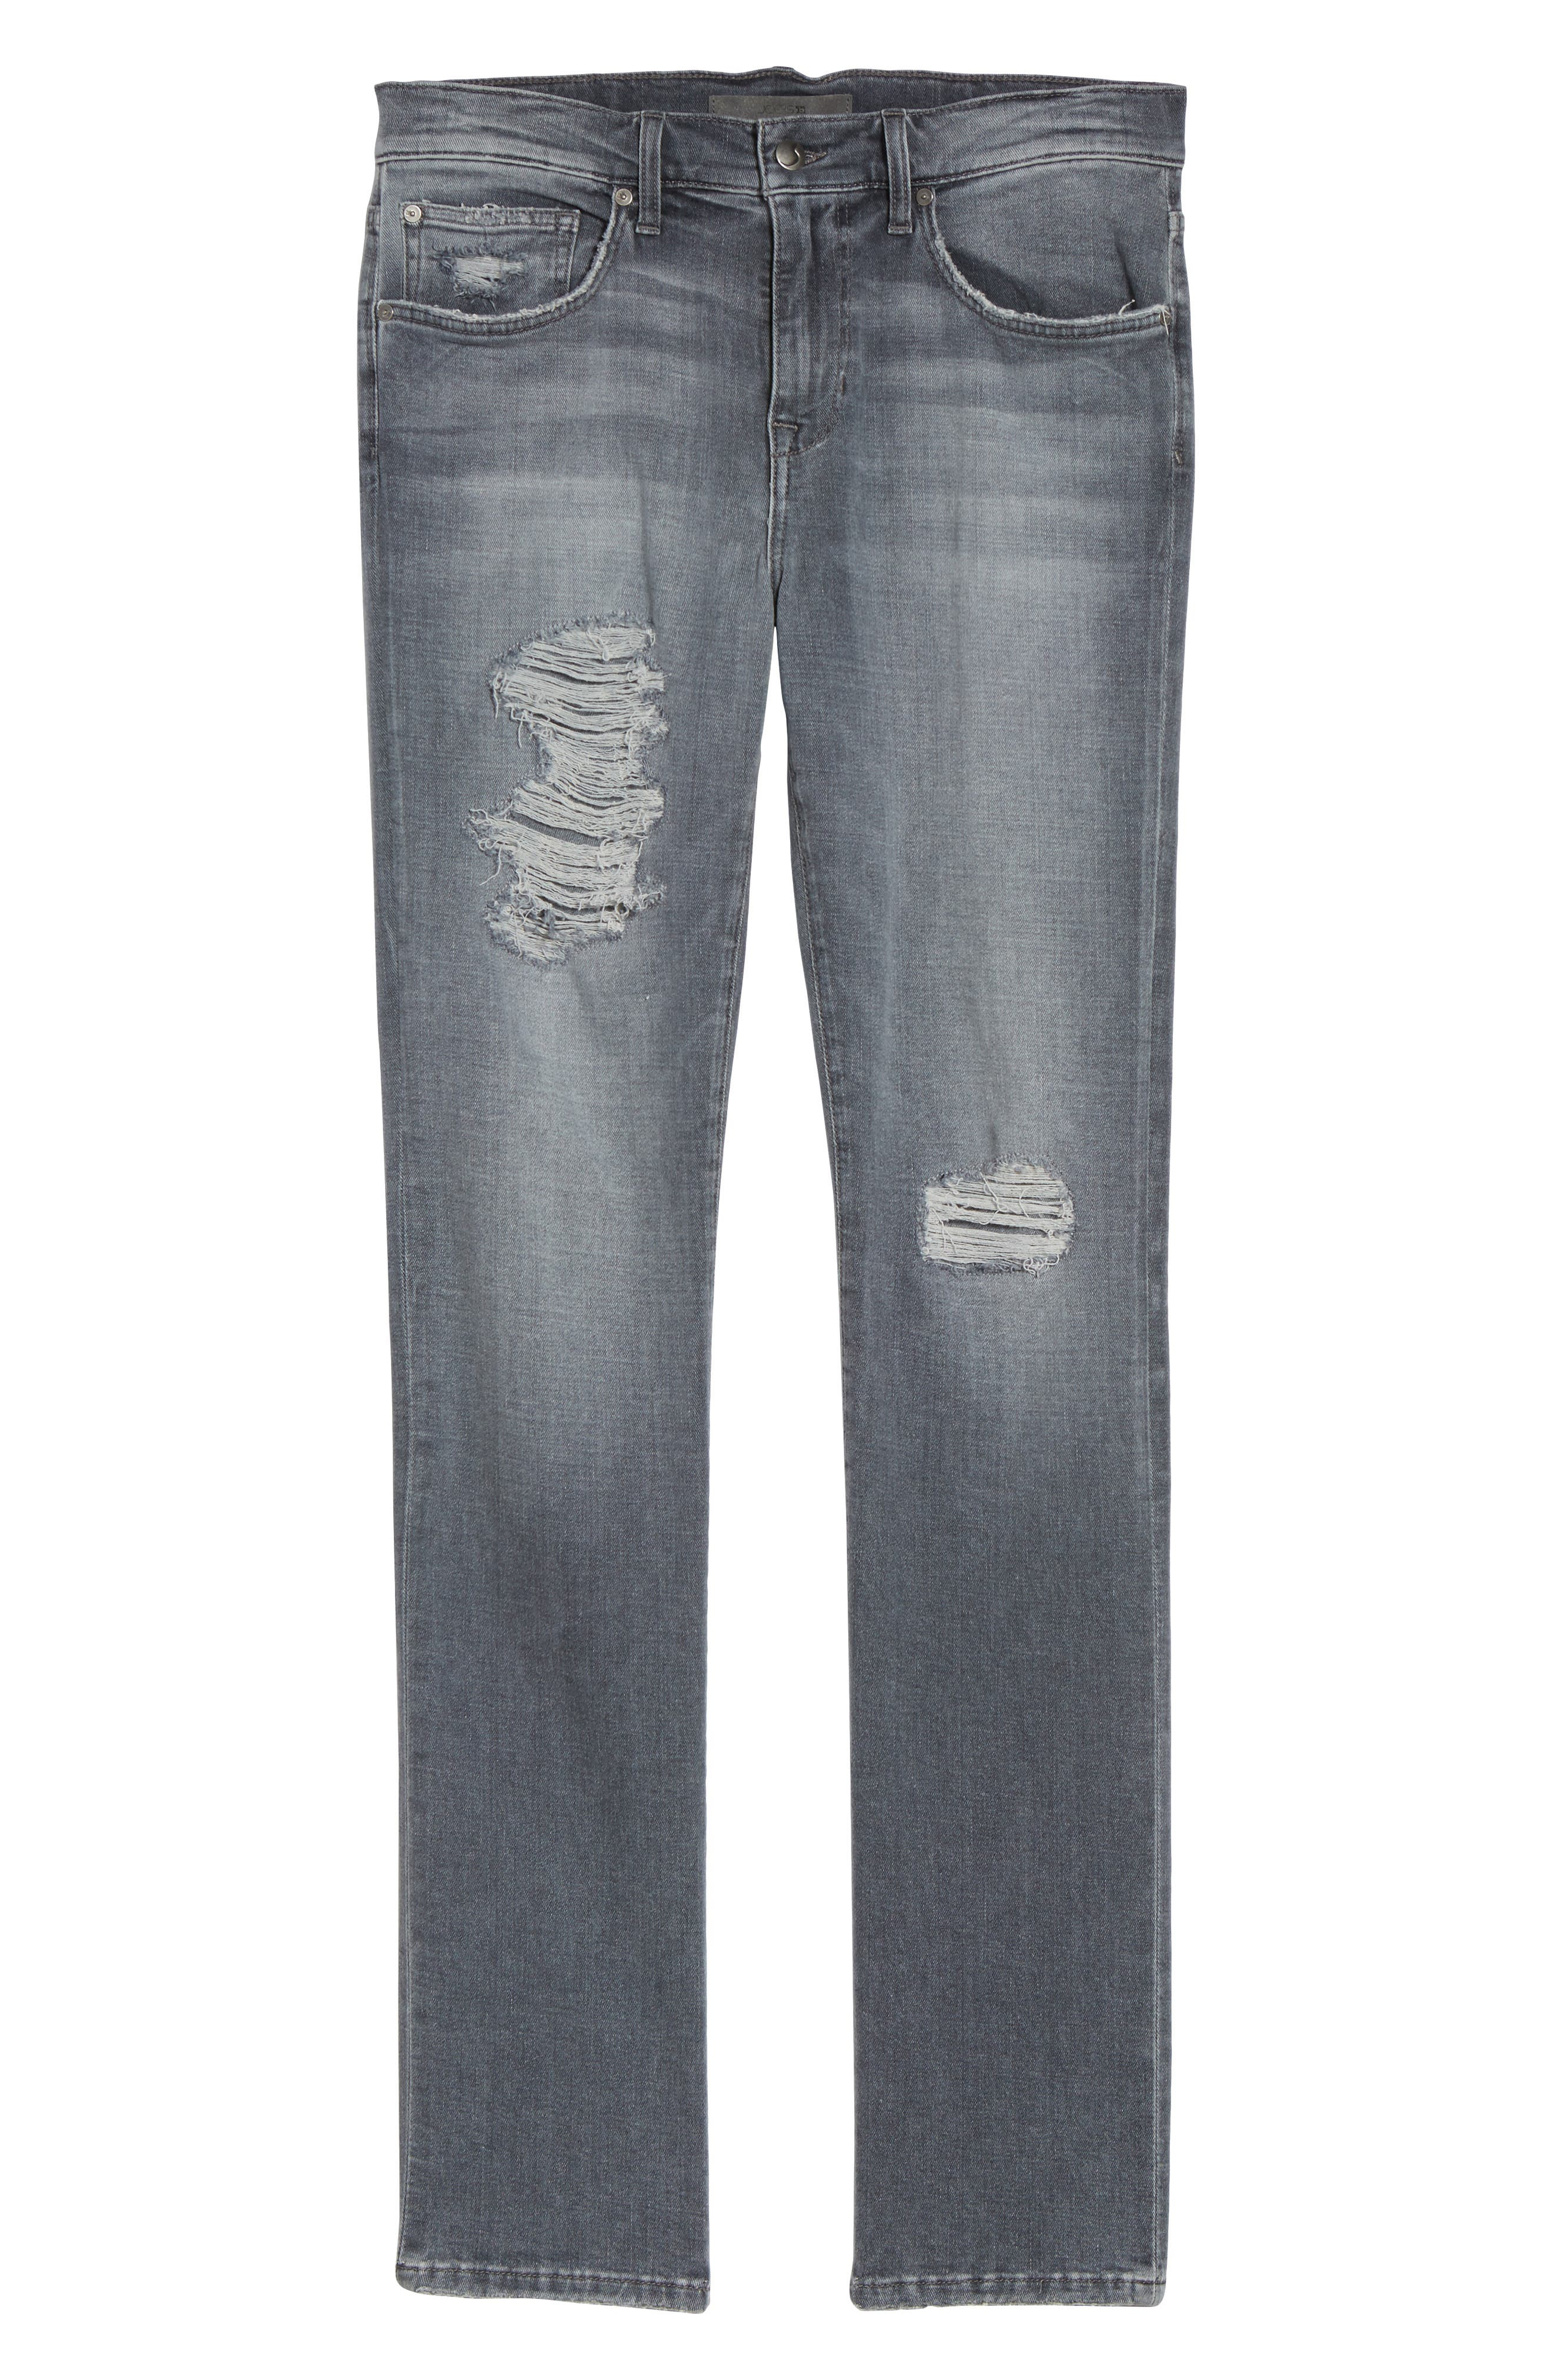 Brixton Distressed Slim Straight Fit Jeans,                             Alternate thumbnail 6, color,                             051